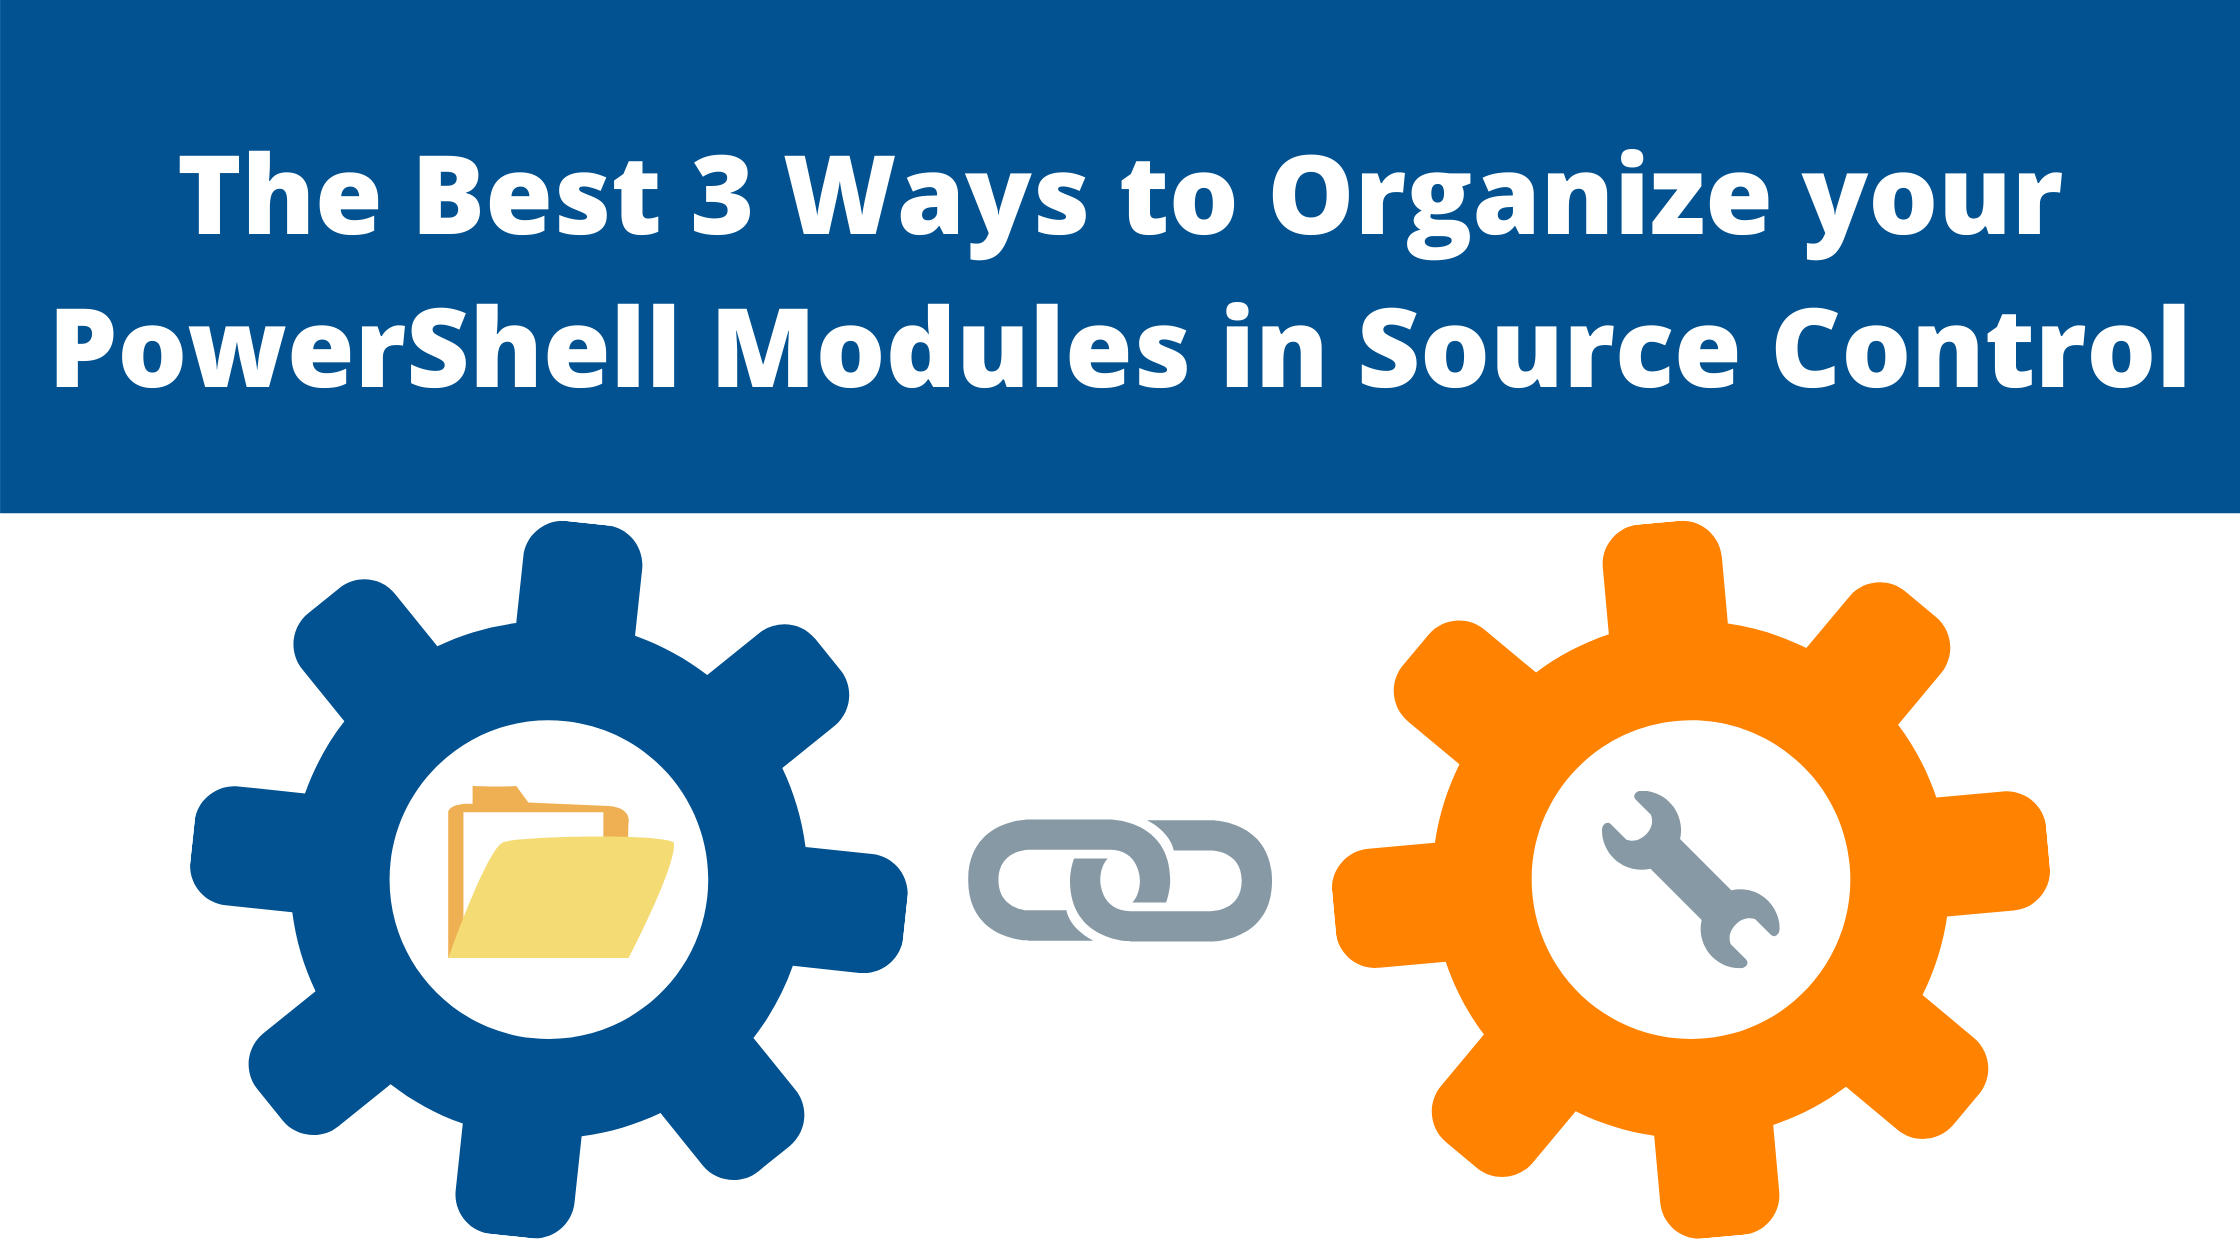 The Best 3 Ways to Organize your PowerShell Modules in Source Control